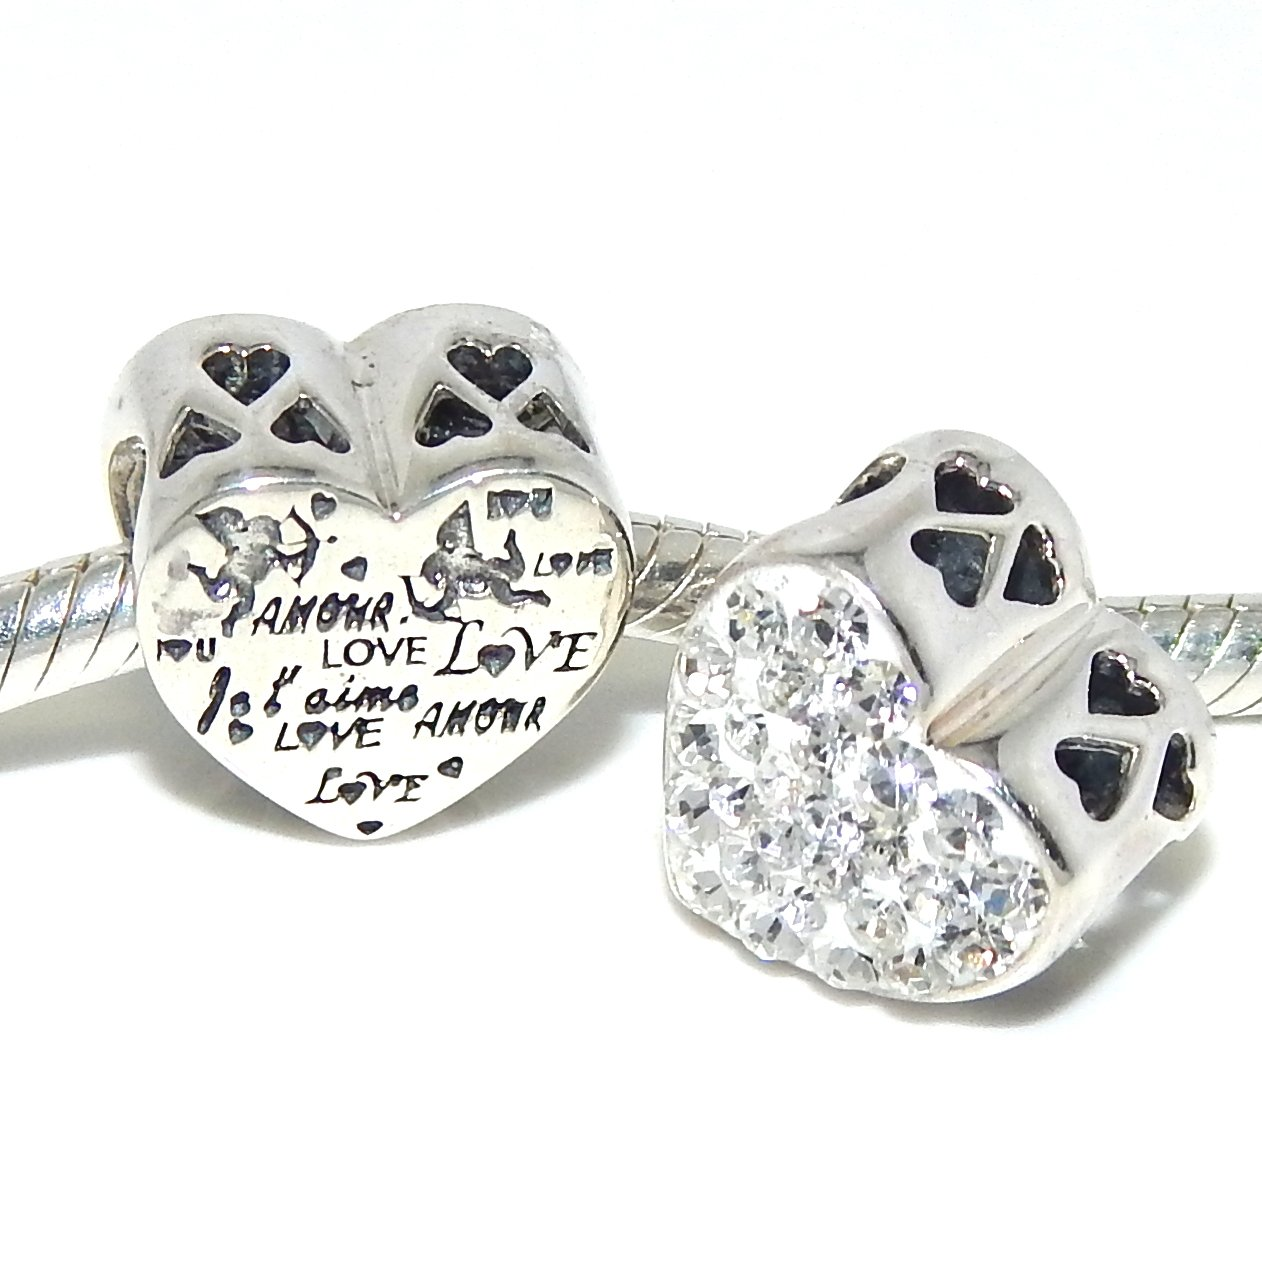 Pro Jewelry .925 Sterling Silver ''Amour Love w/ White Crystals'' Heart Charm Bead 4198